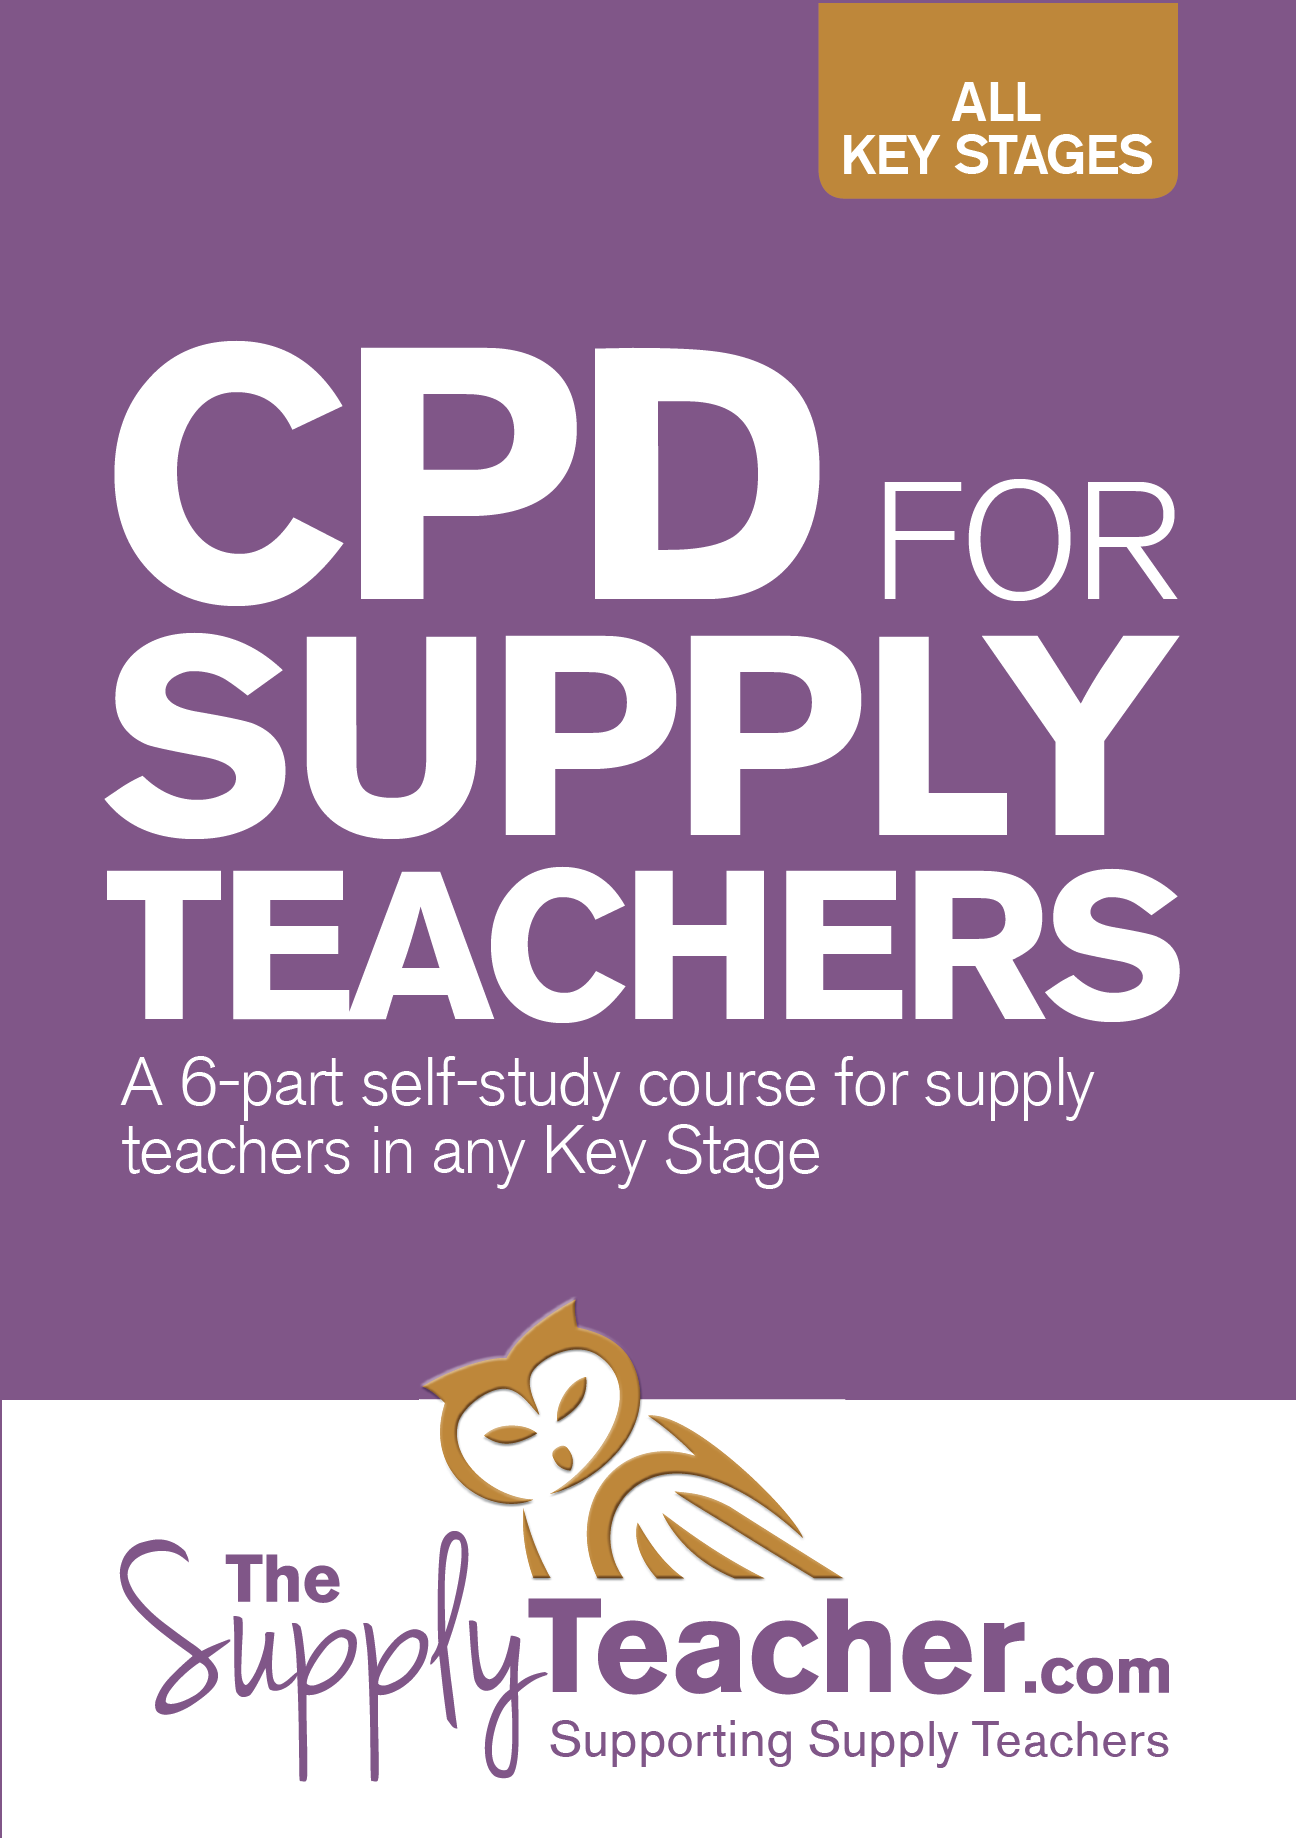 CPD for Supply Teachers - A self-study course